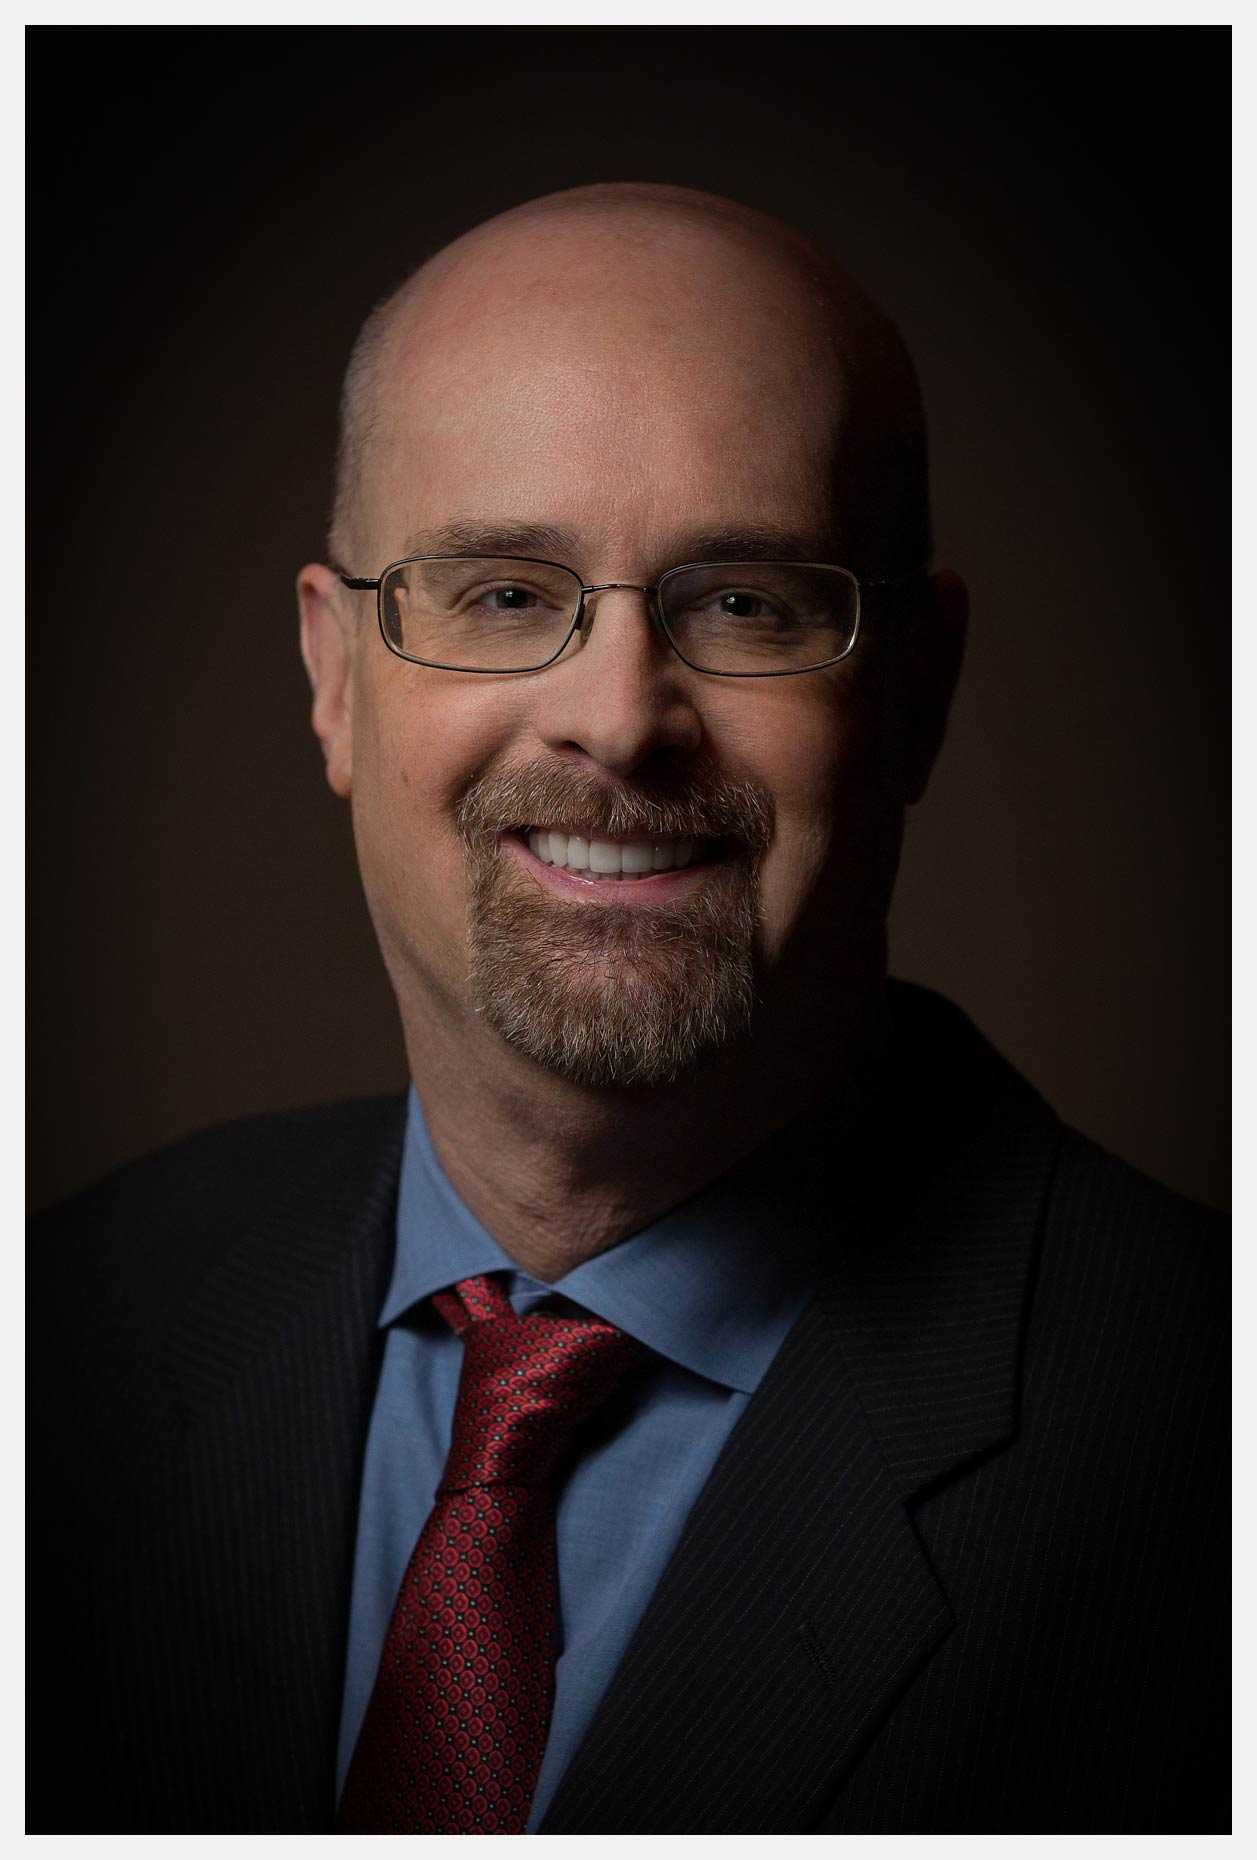 Executive-Headshot-Portrait-Male-Business-Professional-1